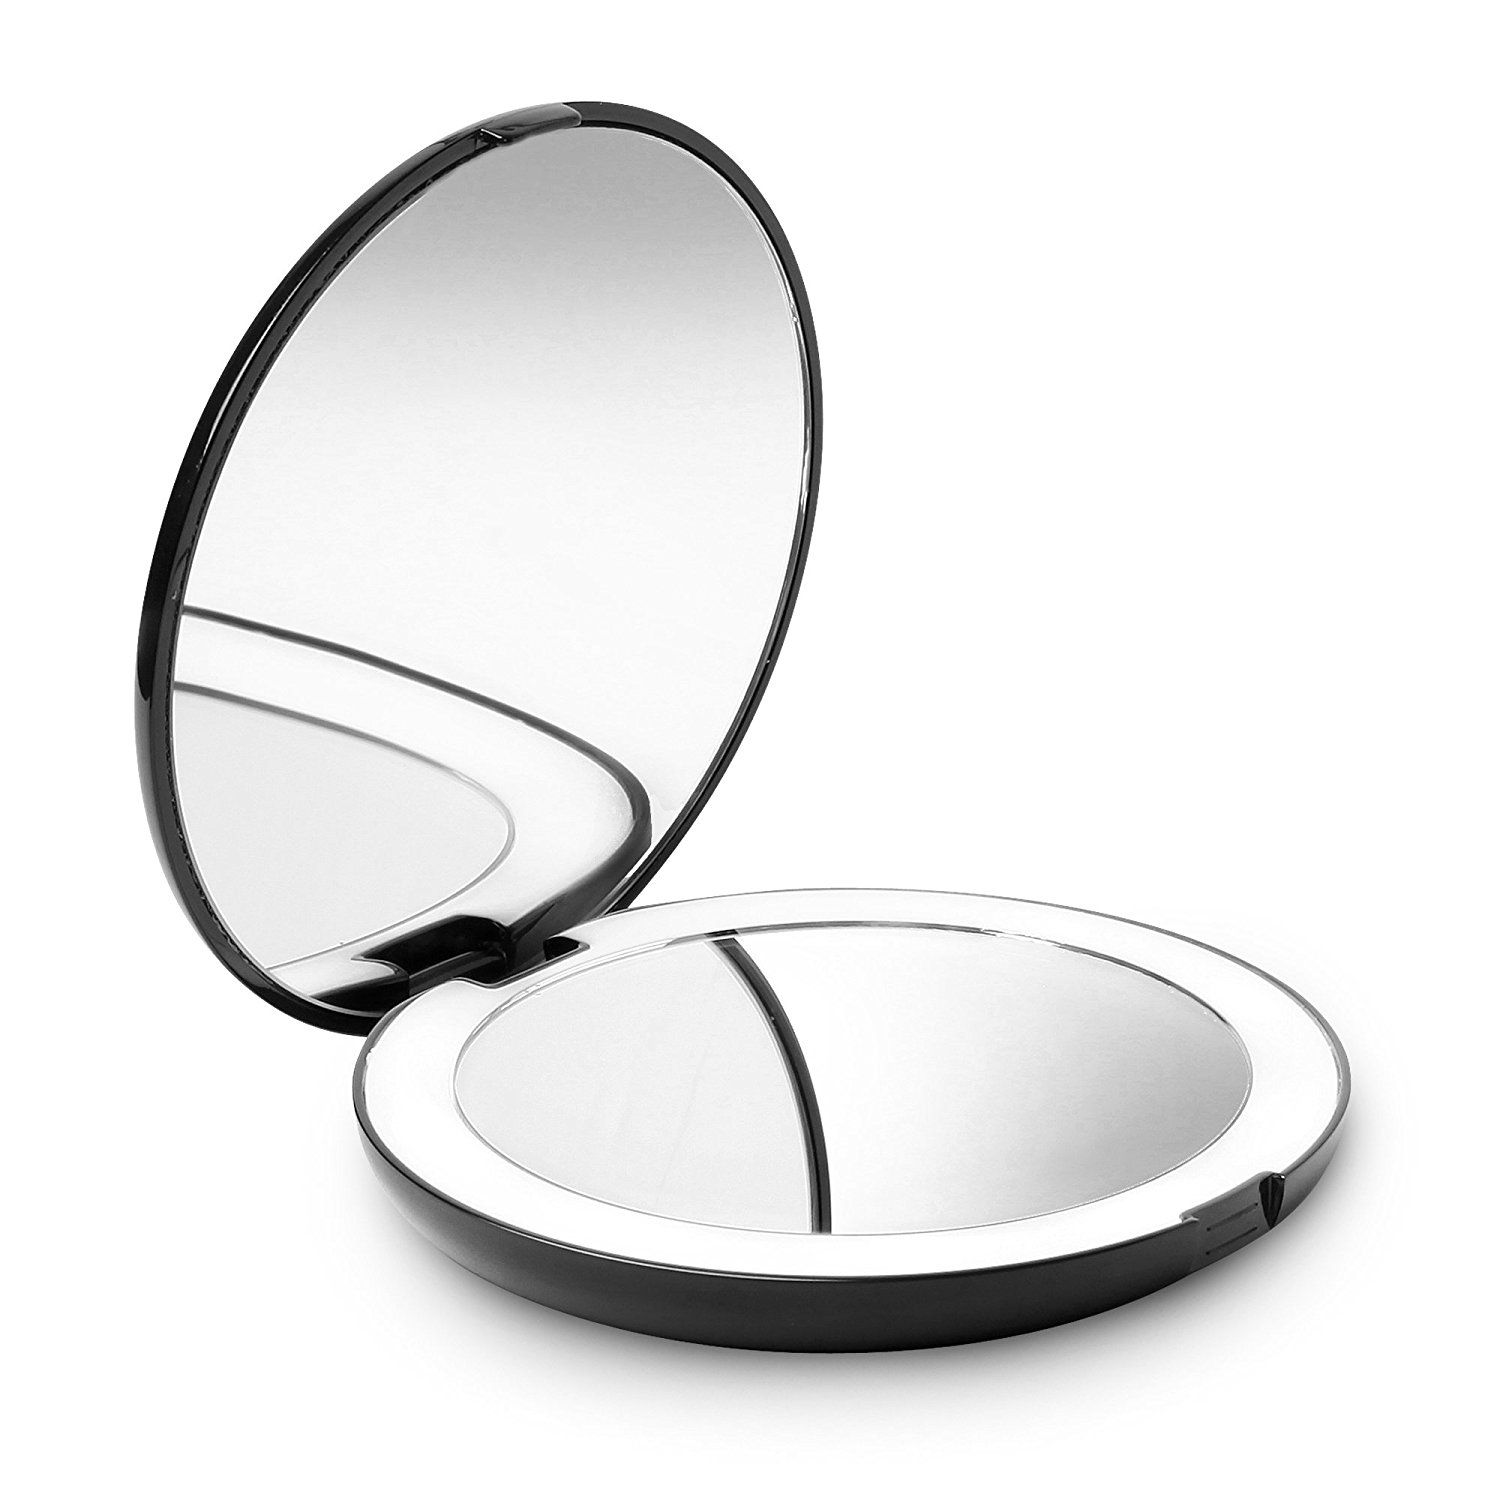 Cavoli Makeup Mirror With Led Lighted Wall Mounted 10x Magnification Chrome Finish 8 5 Inch 10 Wall Mounted Makeup Mirror Mirror With Led Lights Makeup Mirror